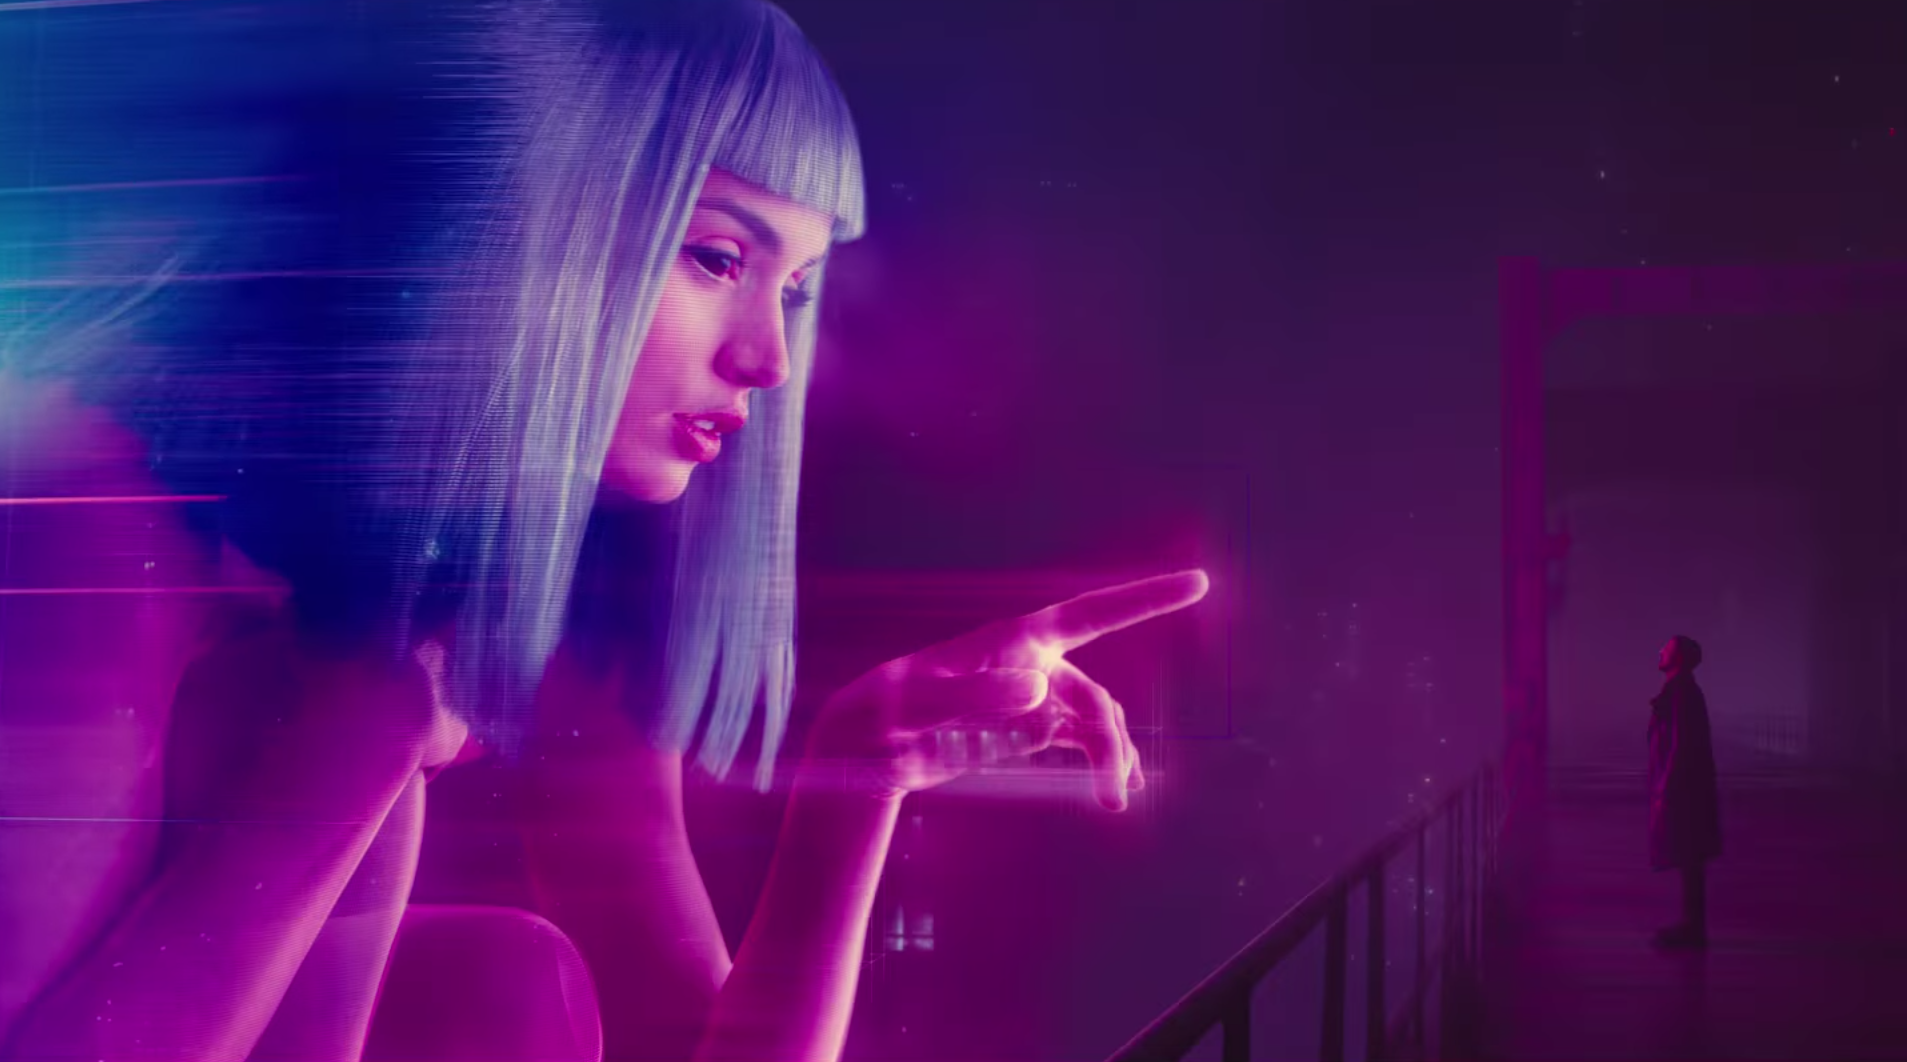 Blade Runner 2049 Posters Feature the Sleek and Schlubby